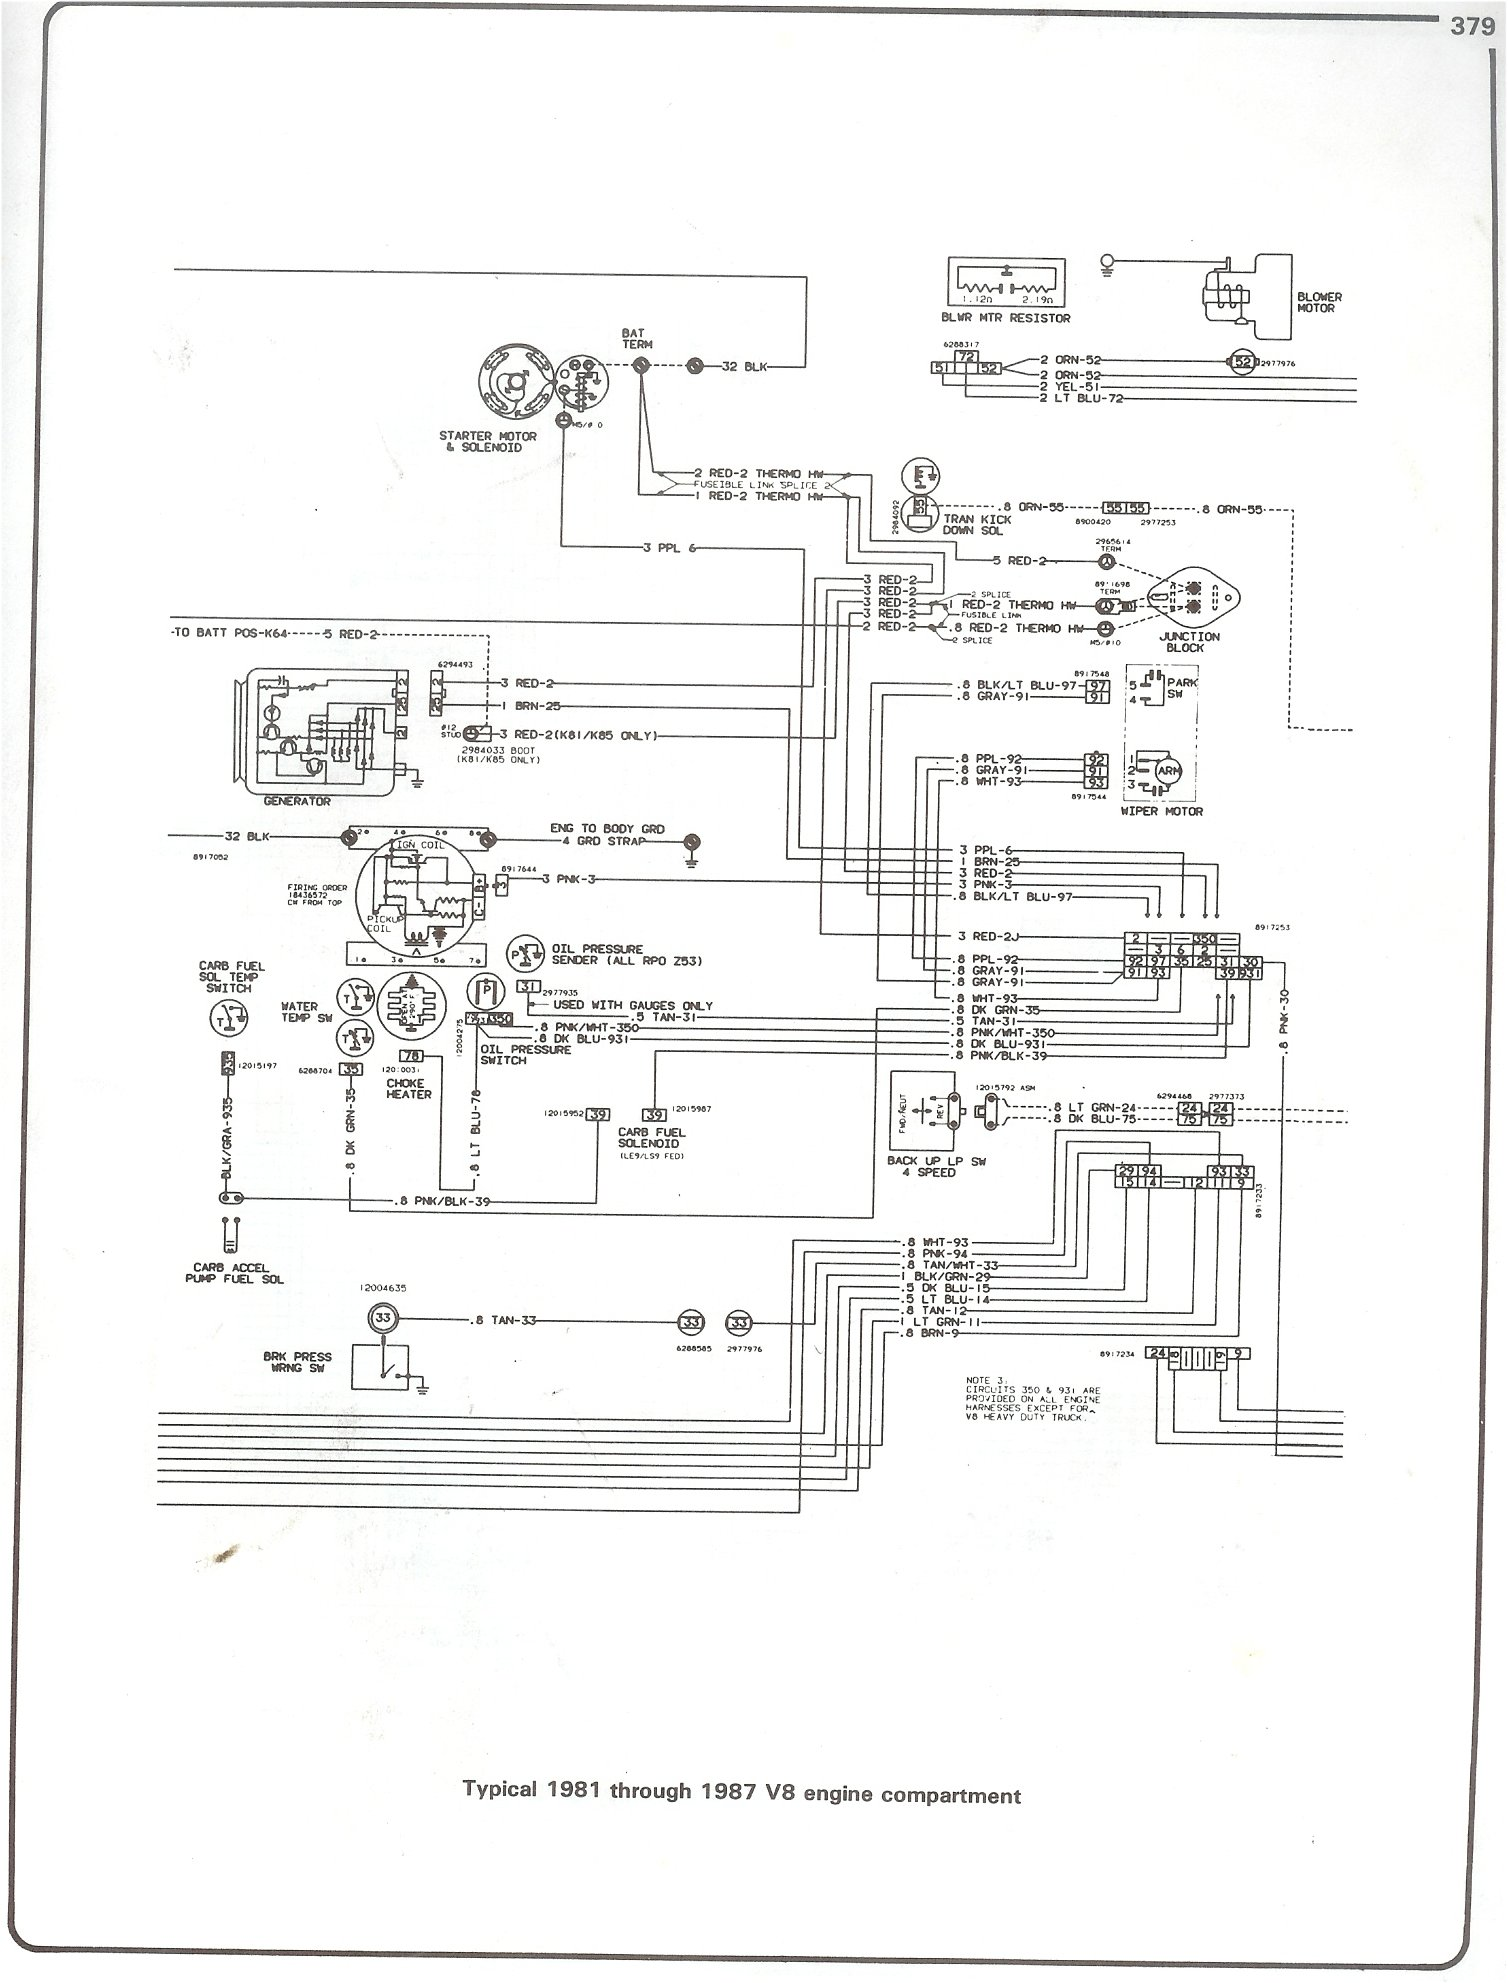 1975 Gm Fuse Box Wiring Library 1979 Corvette Door Latch Parts Diagram 1955 Complete 73